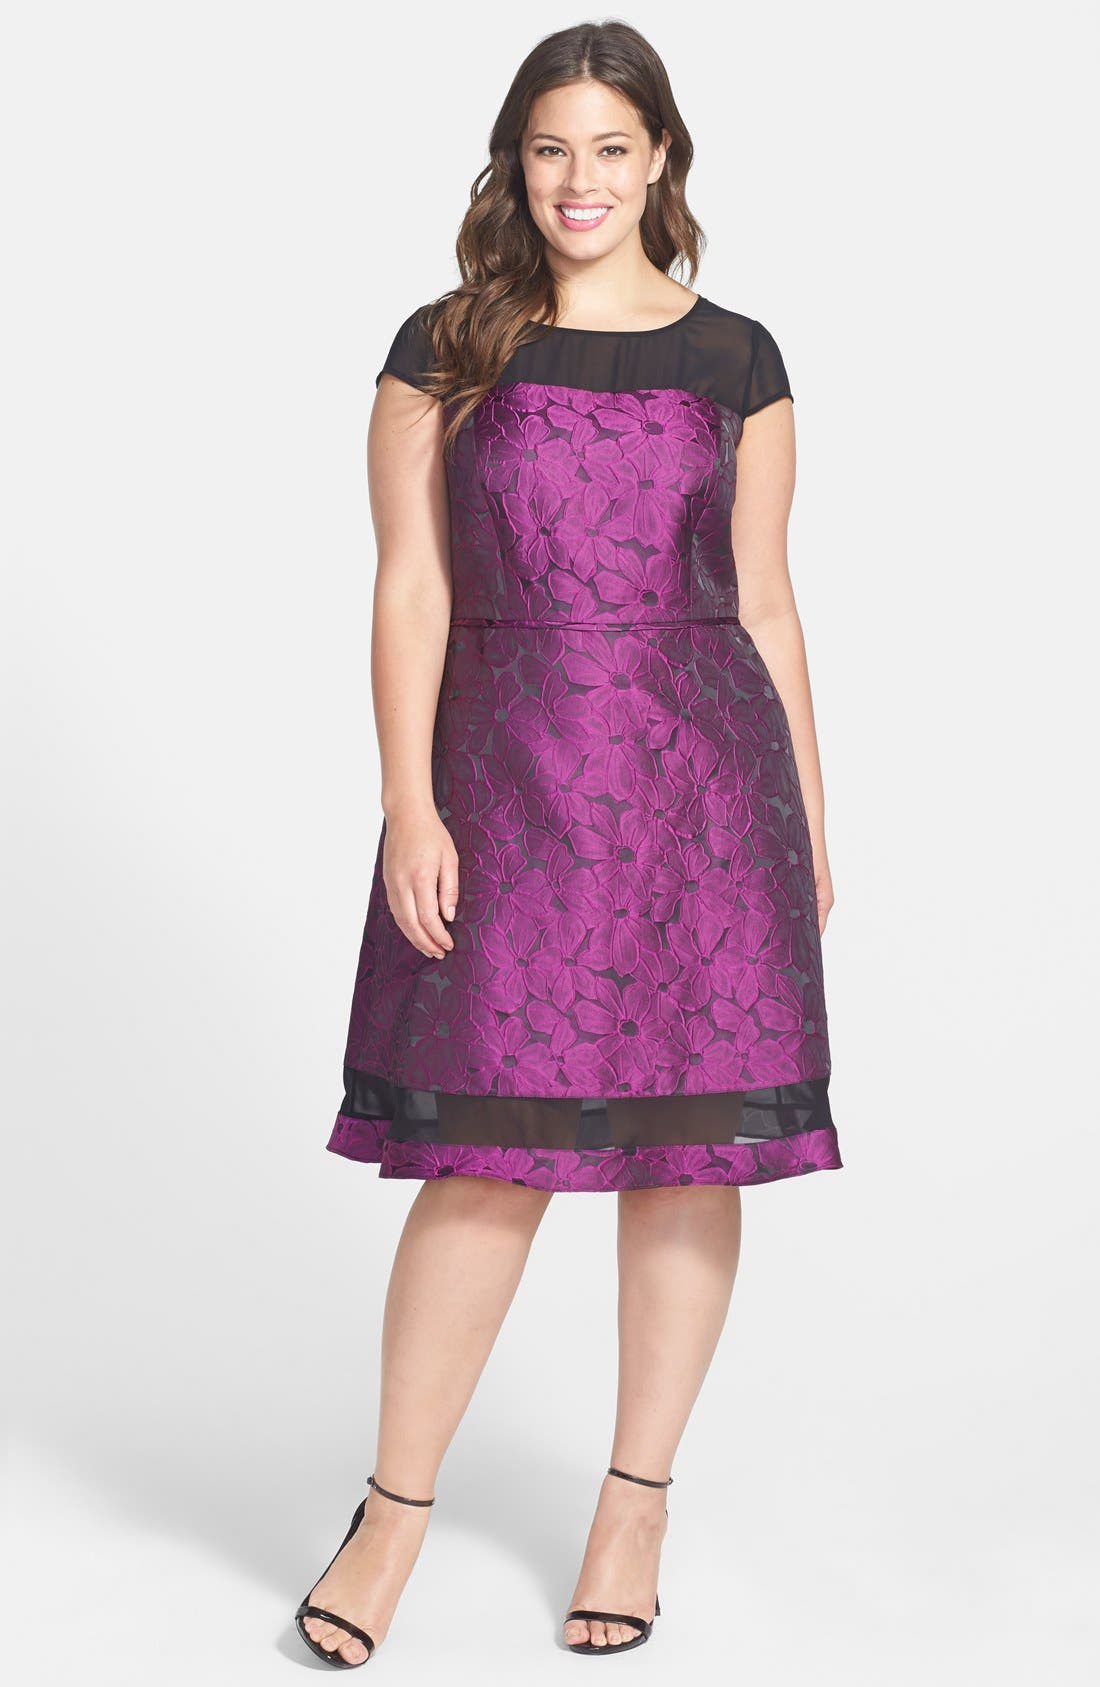 Alternate Image 1 Selected - Adrianna Papell Chiffon Inset Jacquard Fit & Flare Dress (Plus Size)